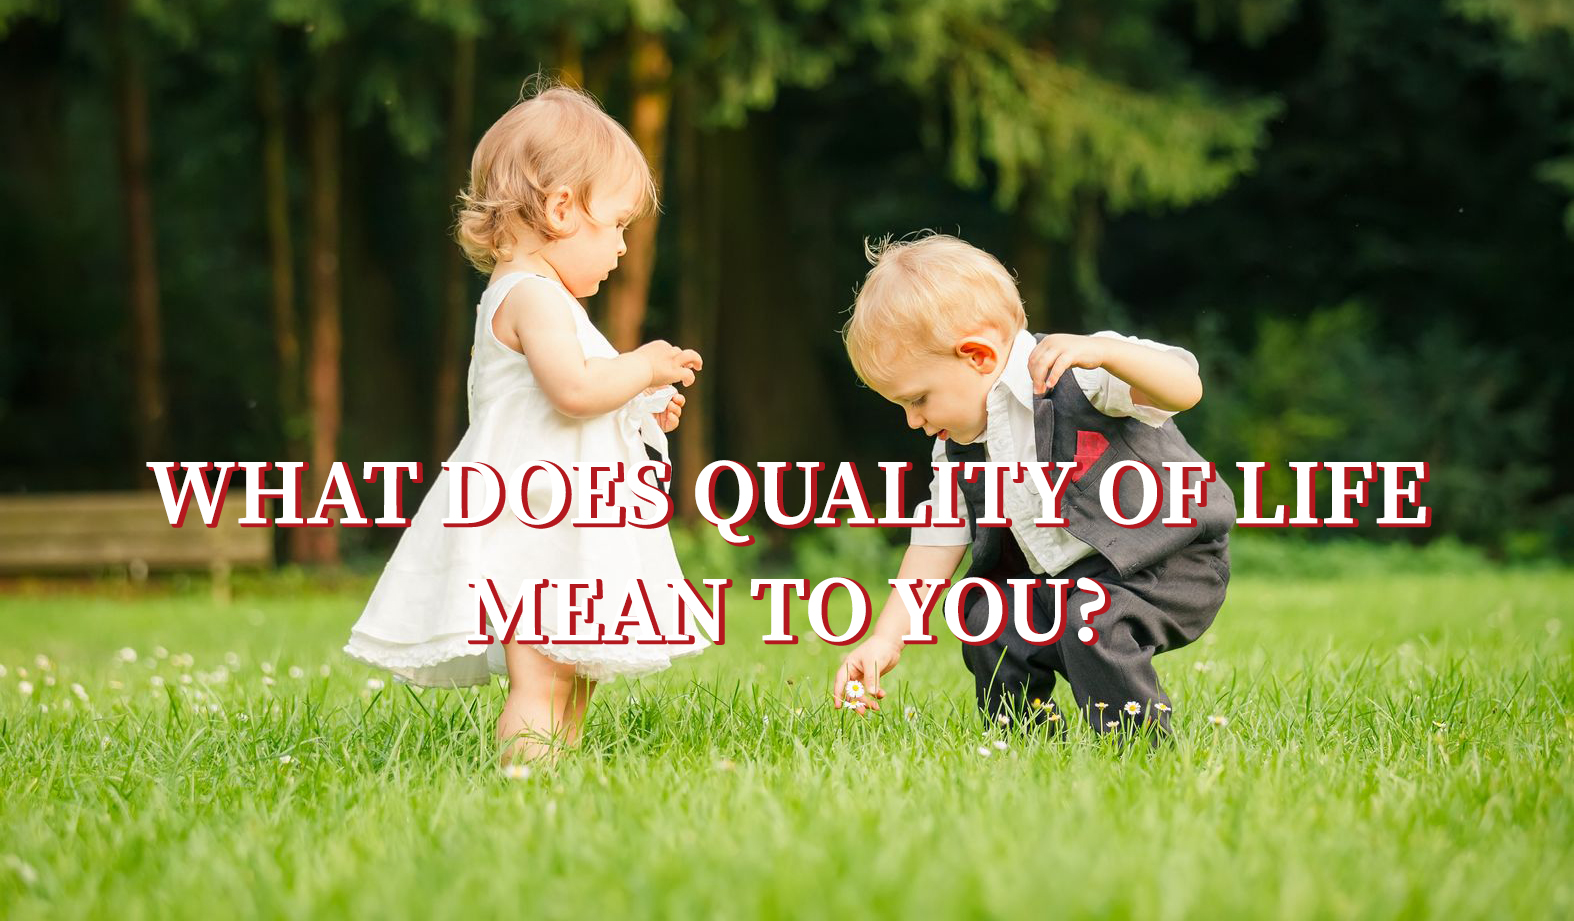 What Does Quality of Life Mean to You